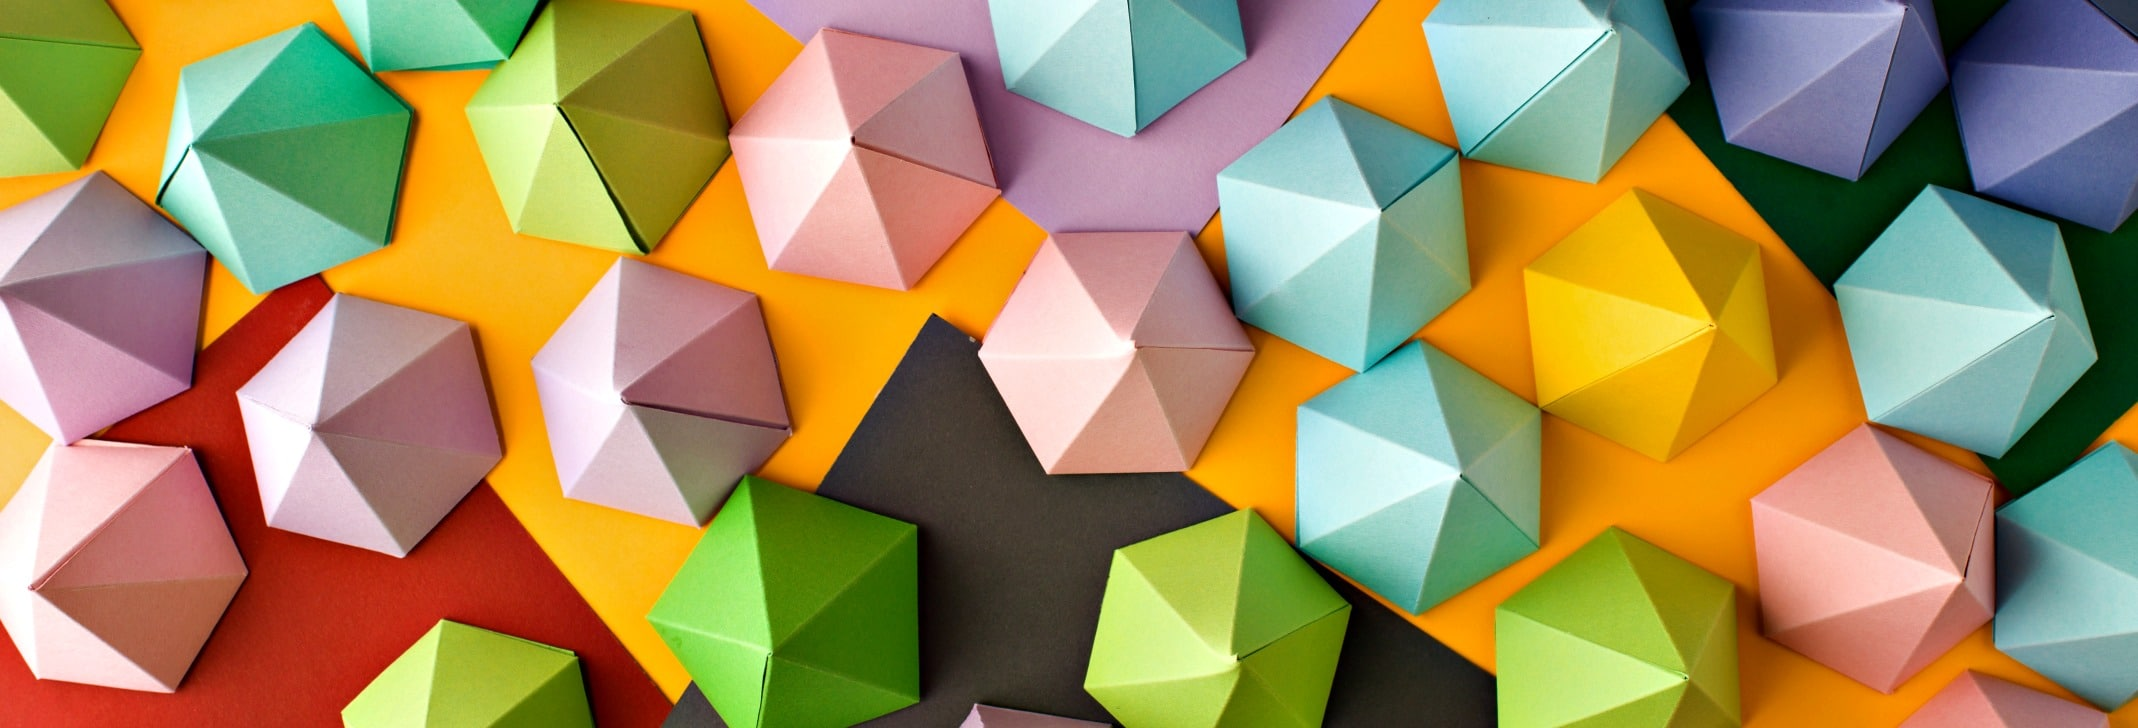 Abstract pyramid composition on colored paper. Usefull for business cards and web